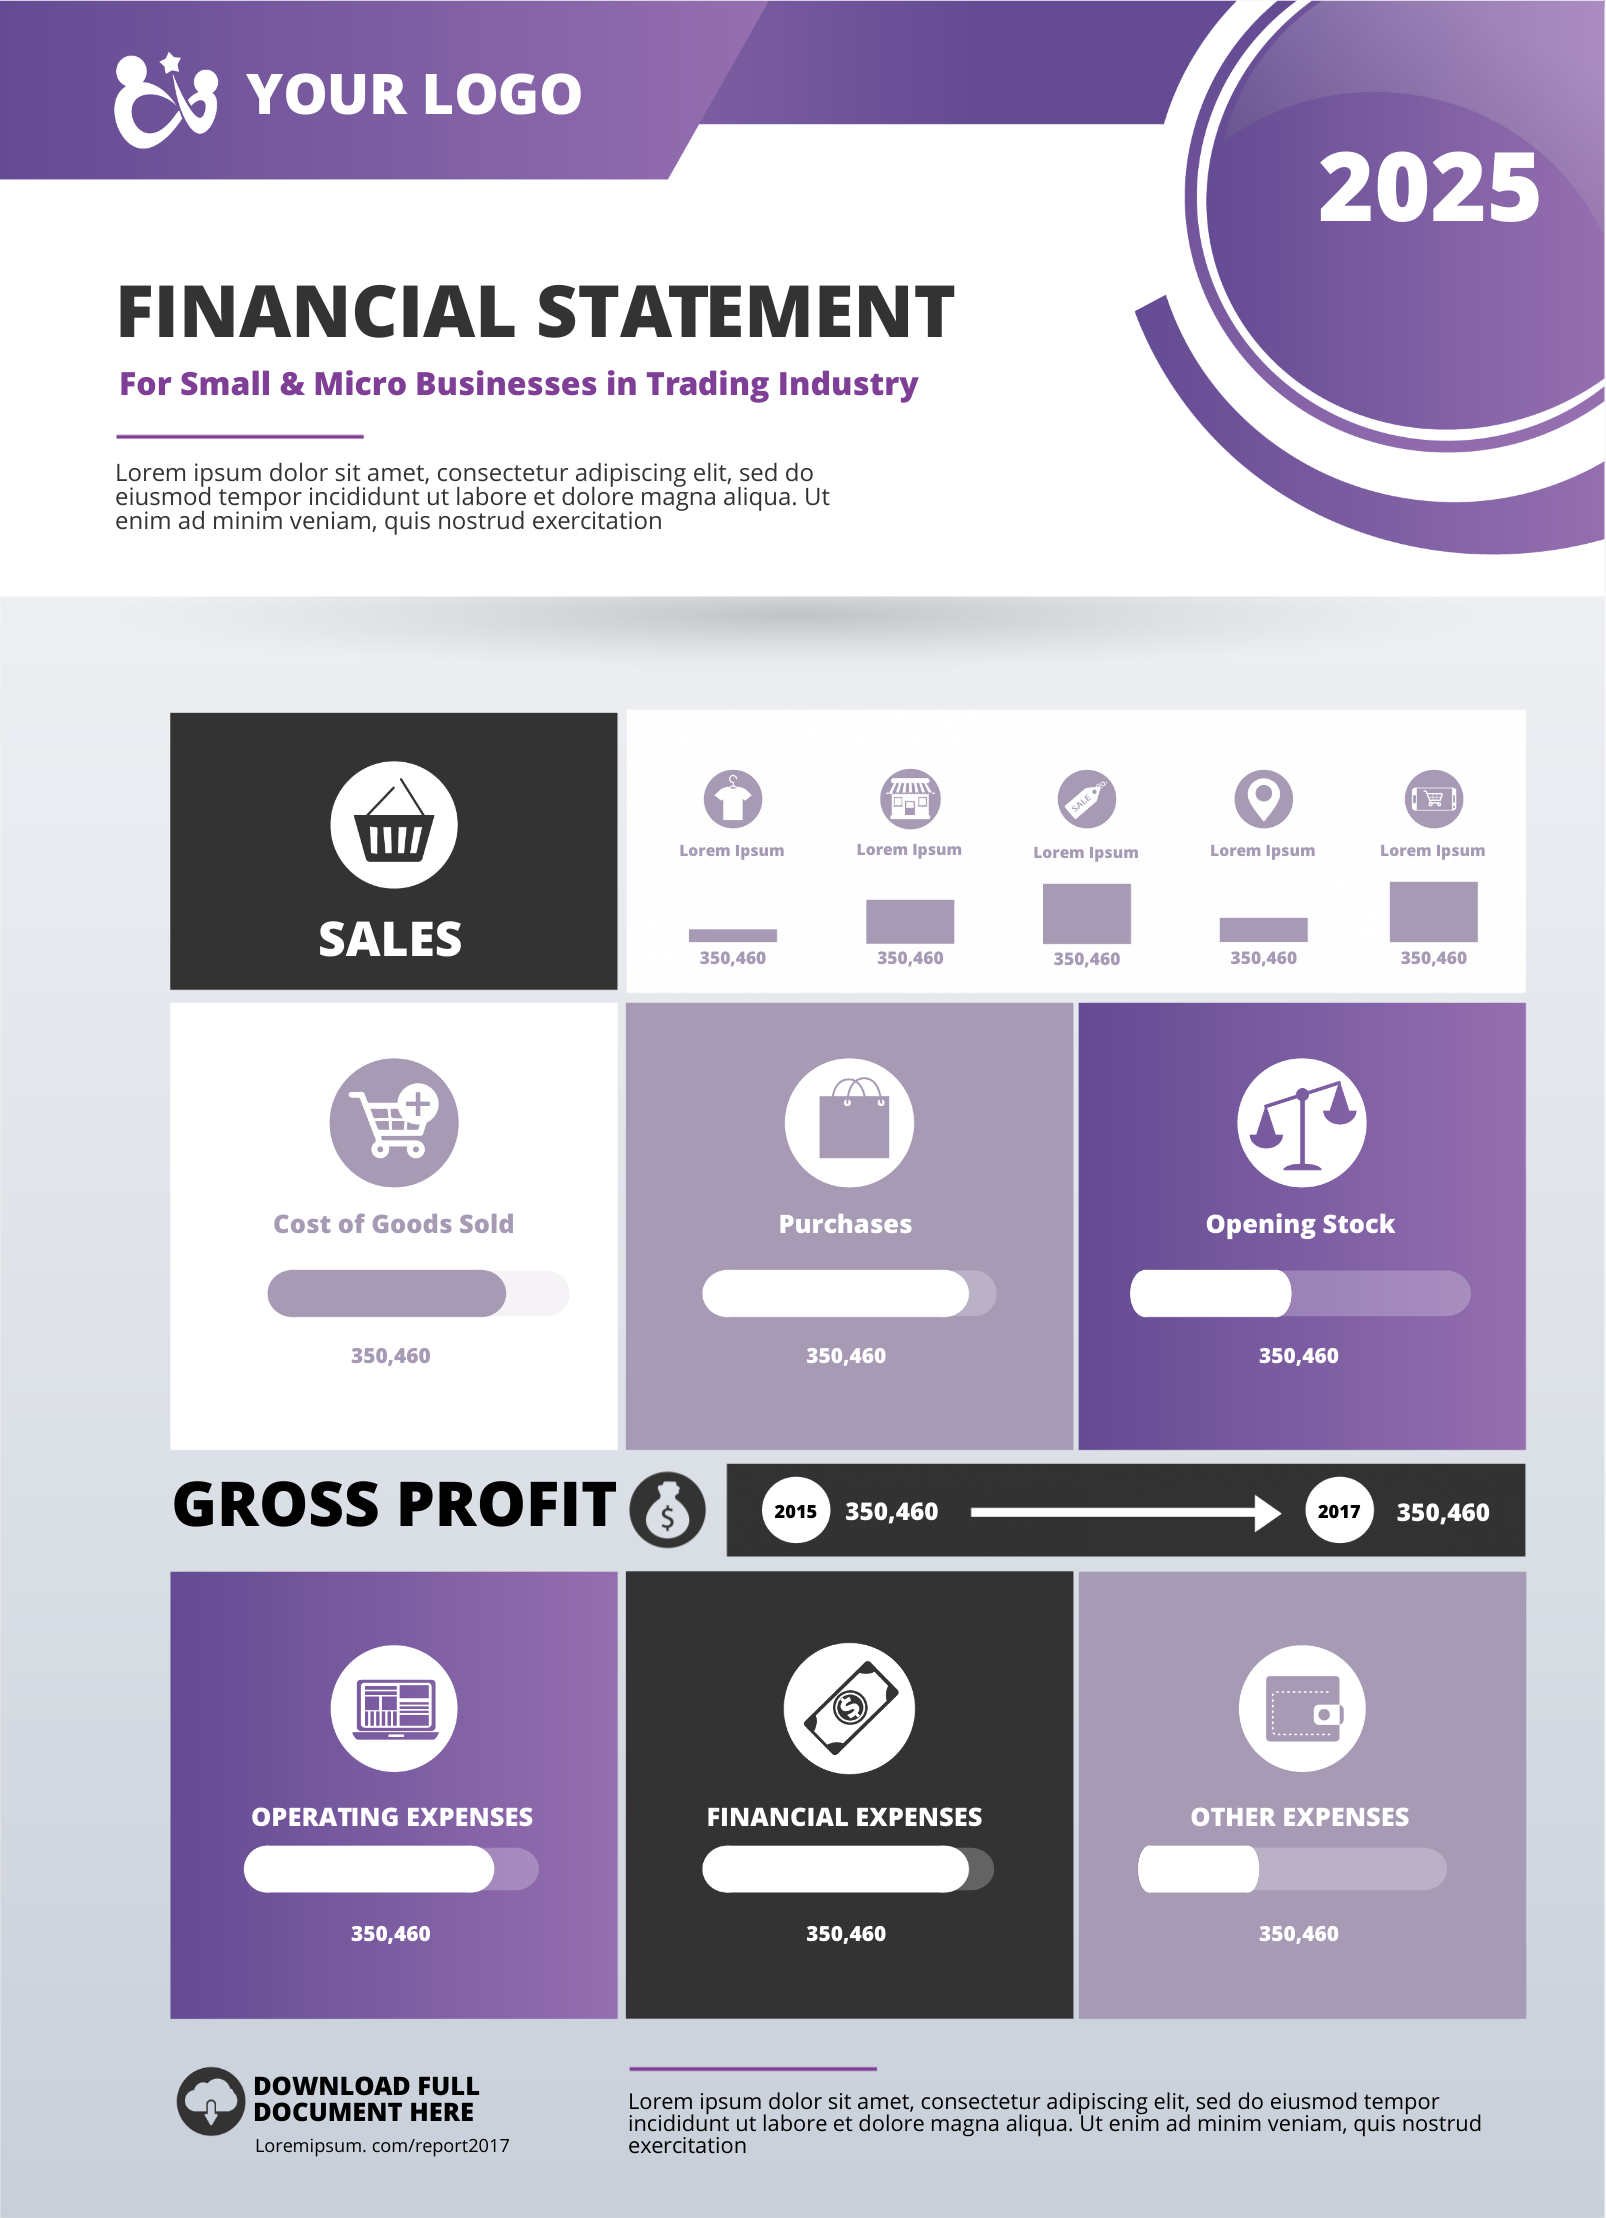 Financial statement infographic